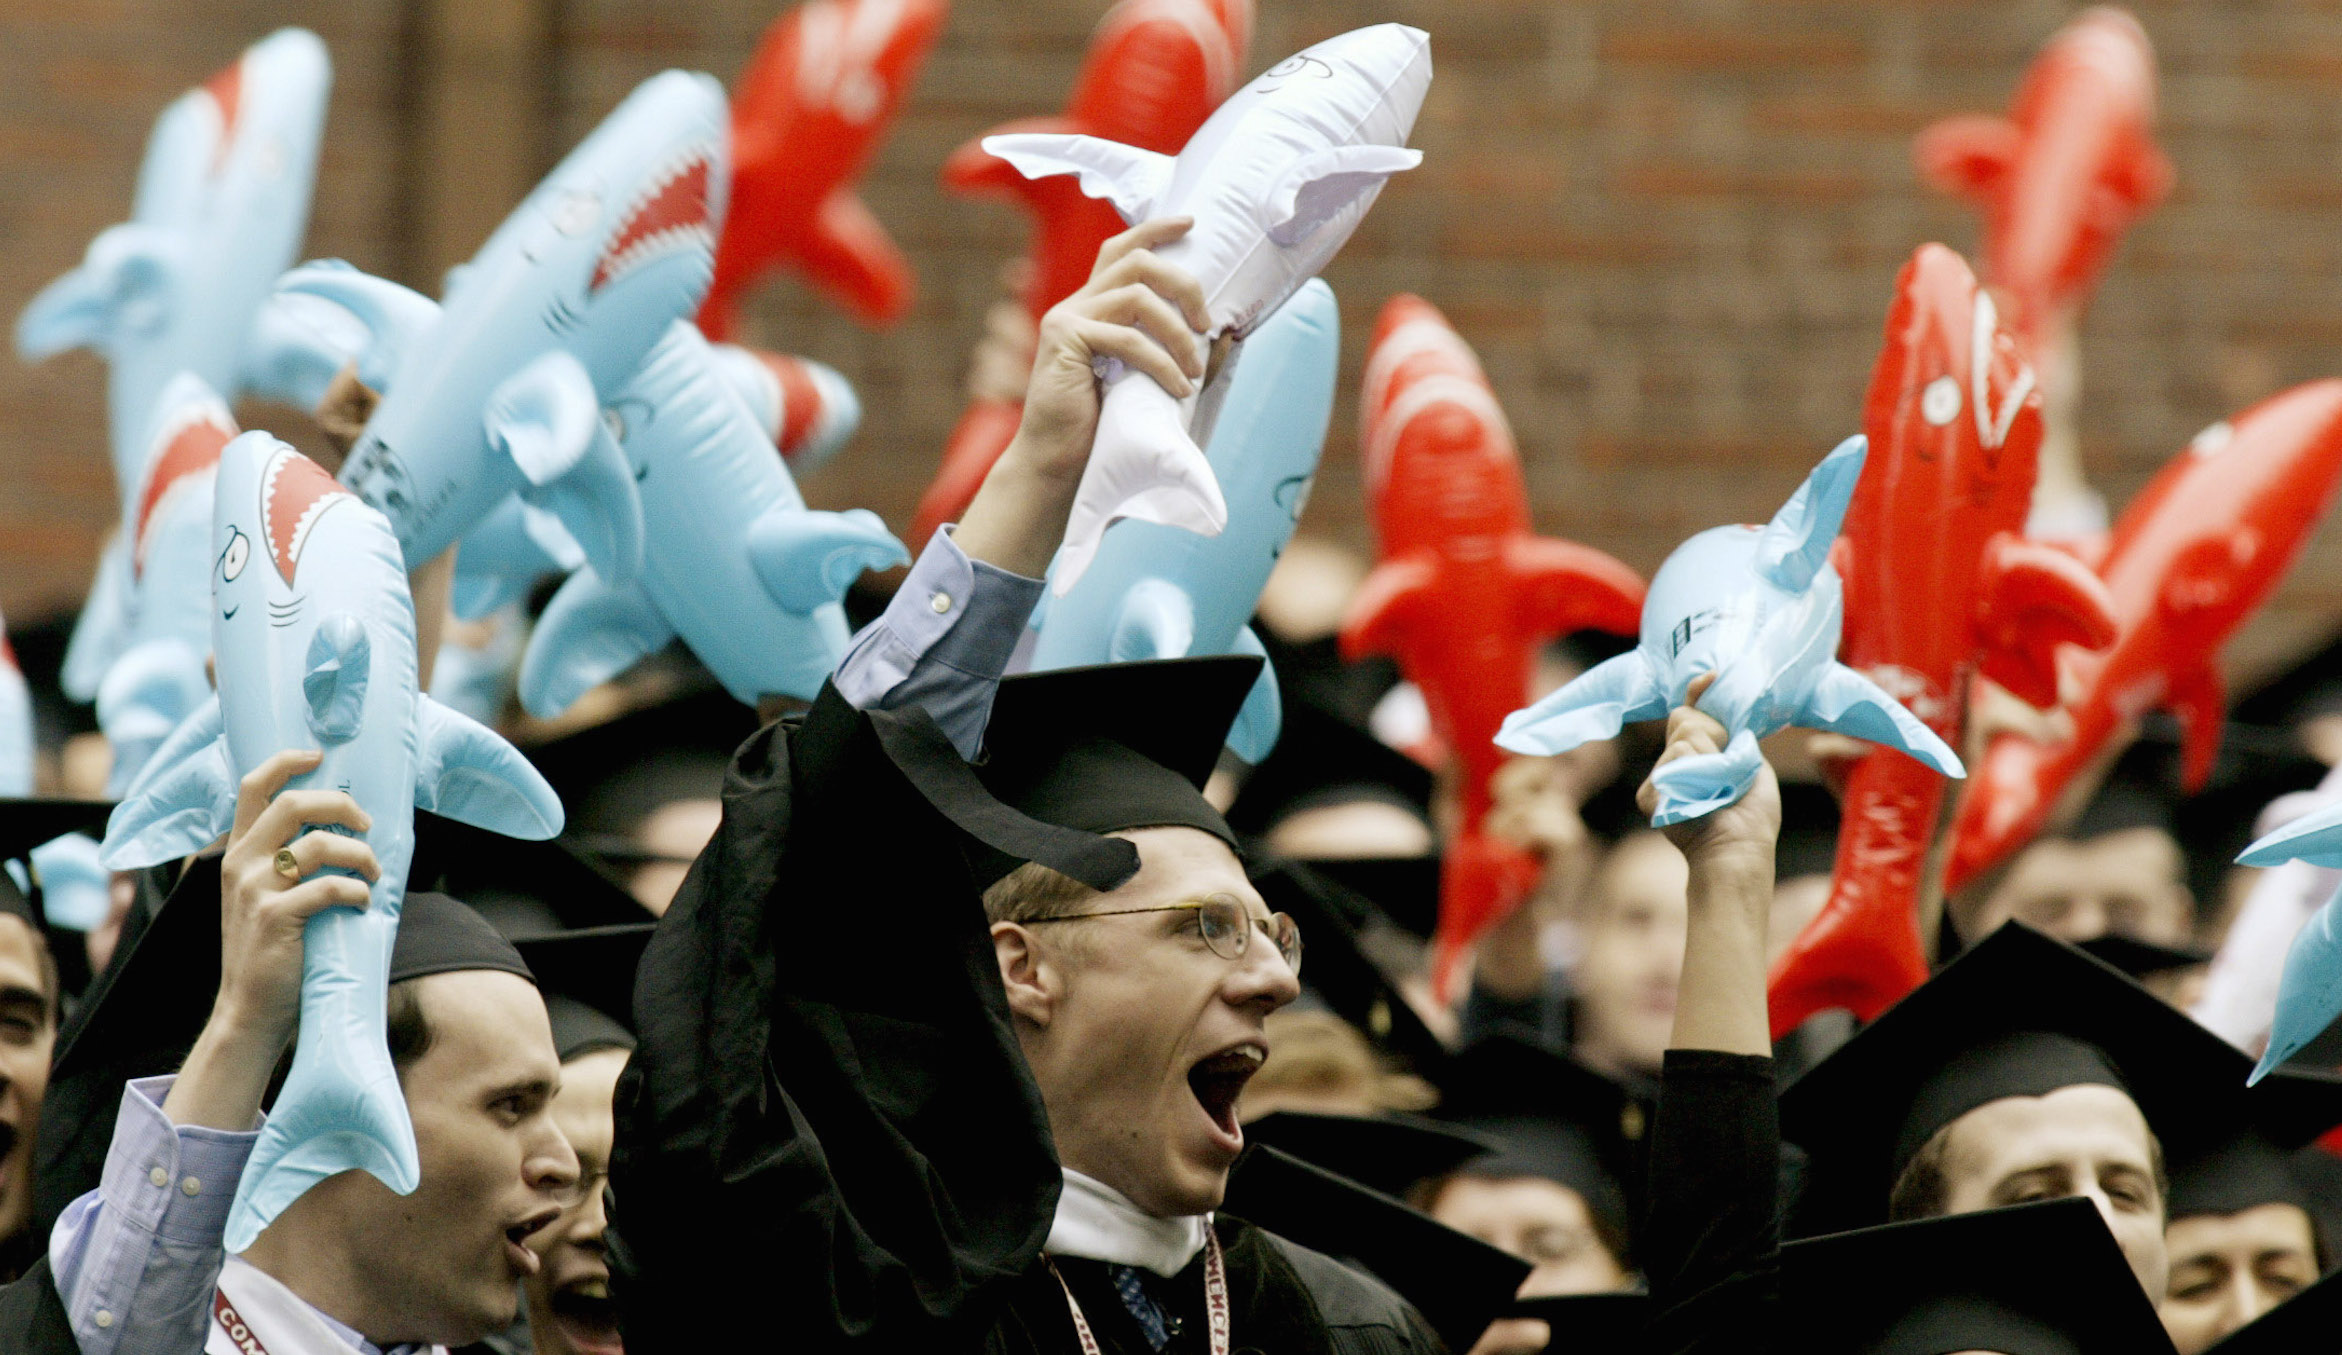 Harvard University Law School graduates mock the reputation of their profession by waving inflatable sharks as their degrees are conferred during commencement ceremonies in Harvard Yard in Cambridge, Massachusetts, June 5, 2003. REUTERS/Jim Bourg  JRB - RTROWQM